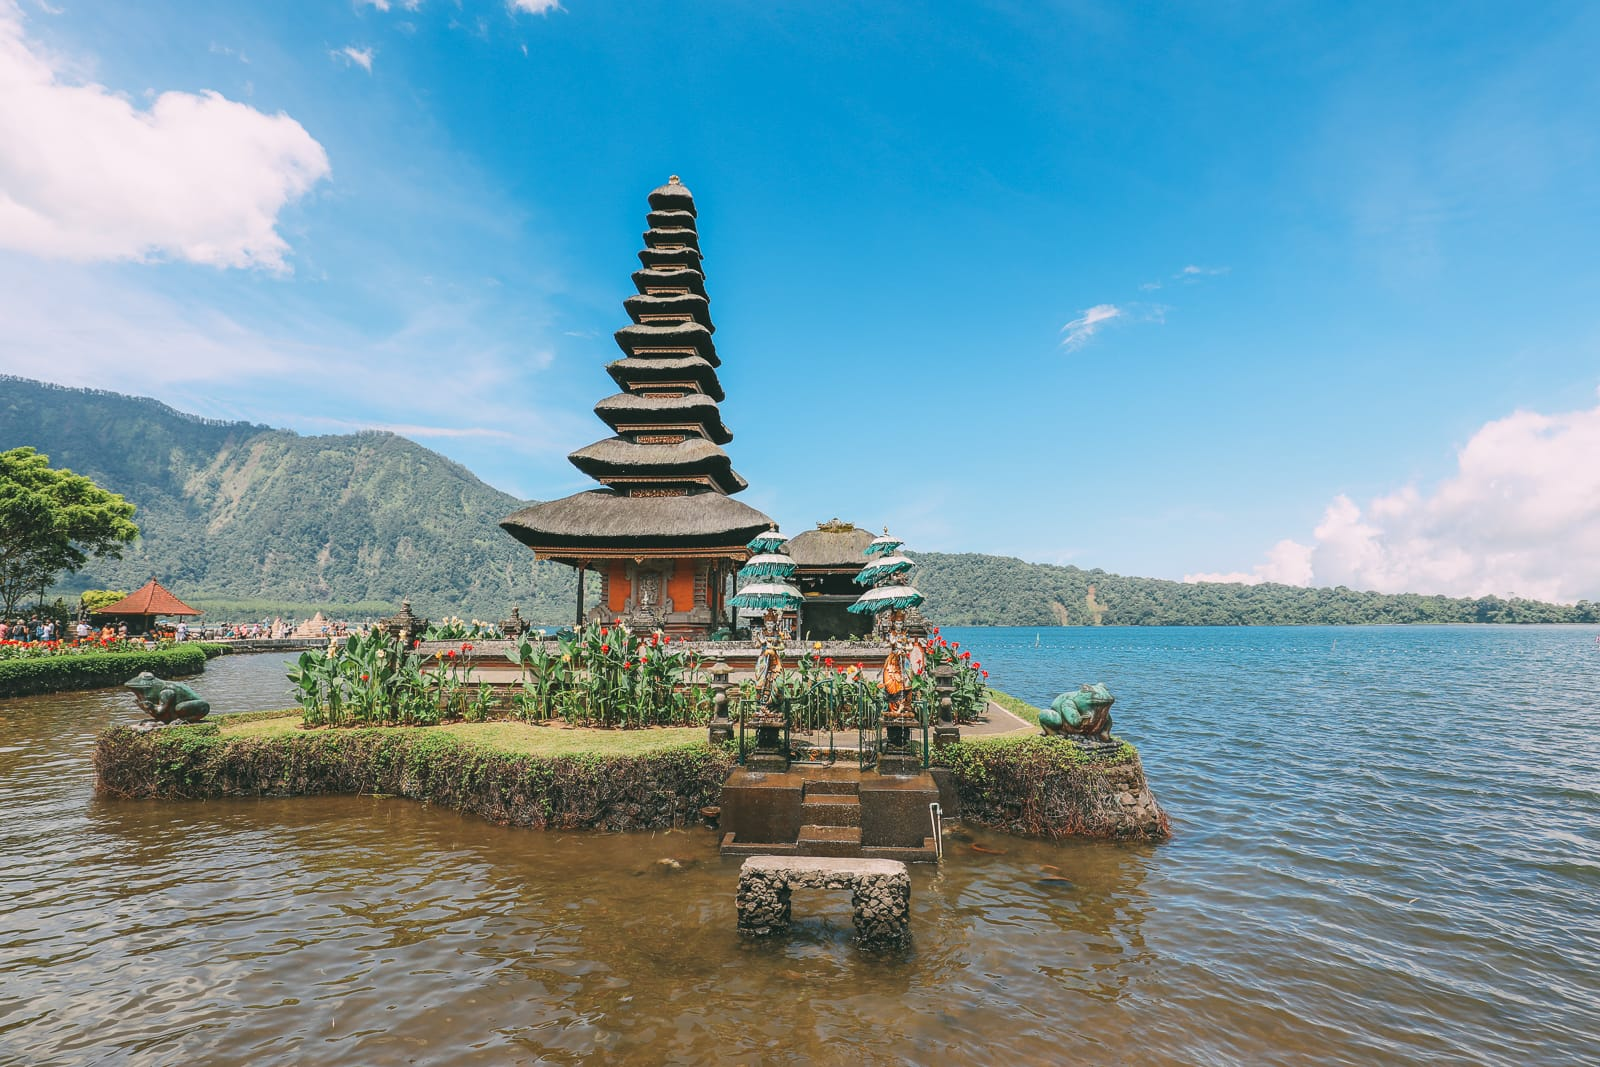 Bali Travel - The Beautiful Nungnung Waterfall And Ulun Danu Bratan Temple (32)